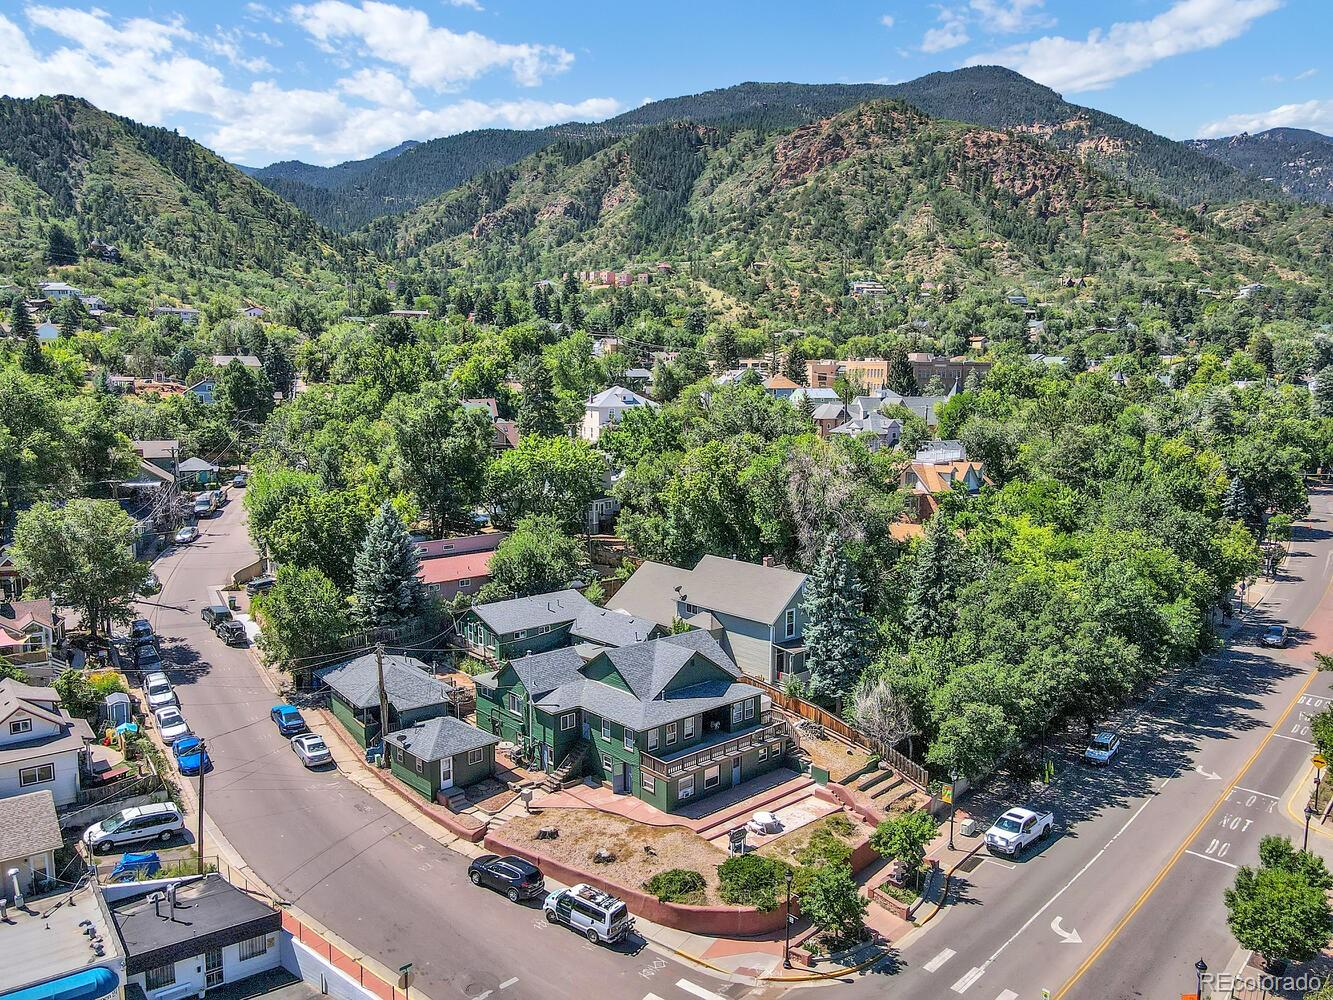 Located in the very heart of Manitou Springs, directly across the street from City Hall. This unique apartment complex features 11 apartments with a variety of 1 bedroom, 2 bedroom, 3 bedroom and studio units. The property consists of 2 studio apartments, seven one bedroom apartments, a two bedroom and a three bedroom apartment. Rent roll is available upon request or through your Realtor. The entire property has been recently repainted, has a newer roof, newer HVAC and recent cosmetic updates in many of the units. Very well kept property with many recent updates and upgrades. This property is professionally managed and never suffers vacancies as the location can't be beat. If you've been looking for a multi family property that is truly turnkey in the heart of a vibrant community here is your shot!